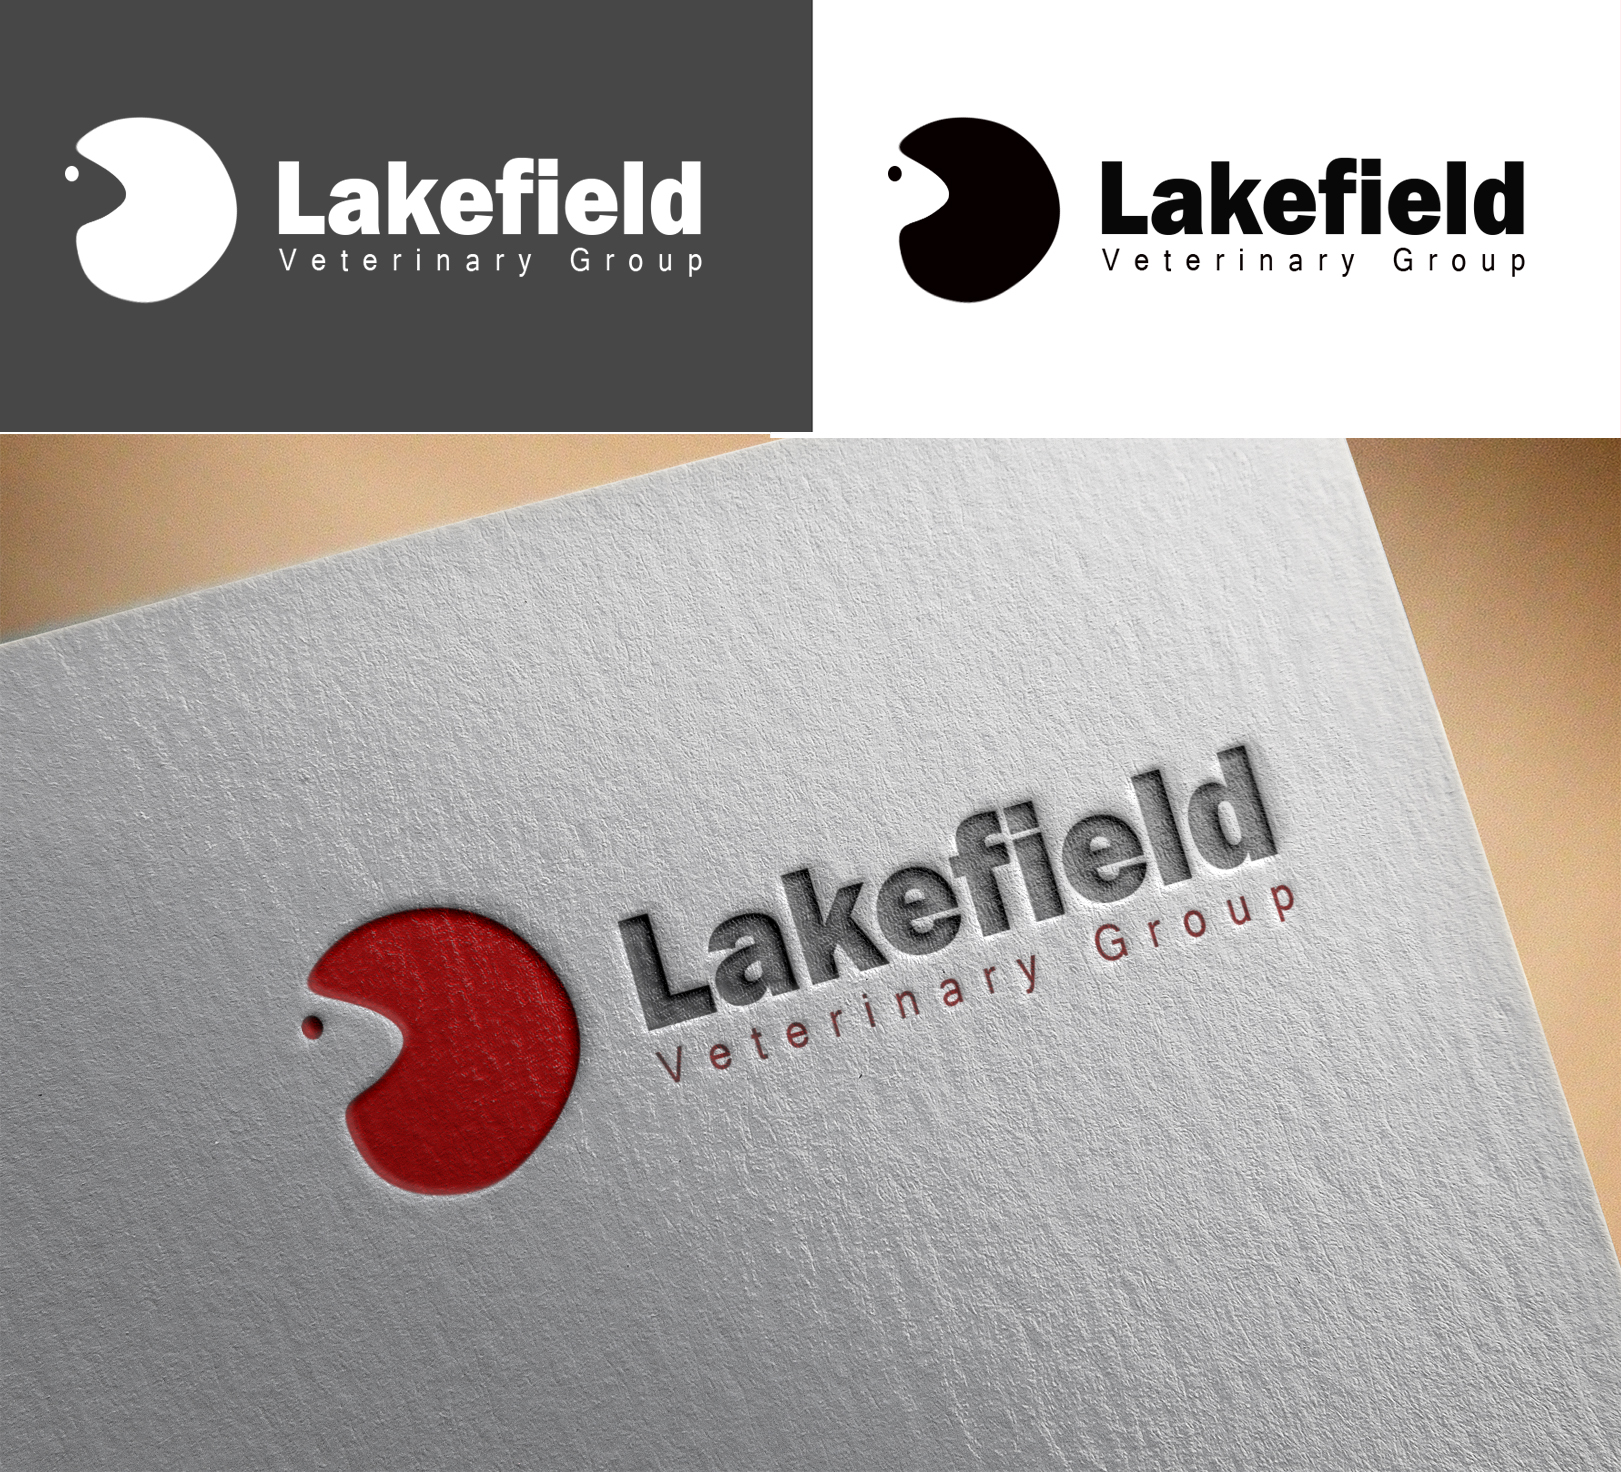 Logo Design by Sohaib Ali Khan - Entry No. 20 in the Logo Design Contest Inspiring Logo Design for Lakefield Veterinary Group.